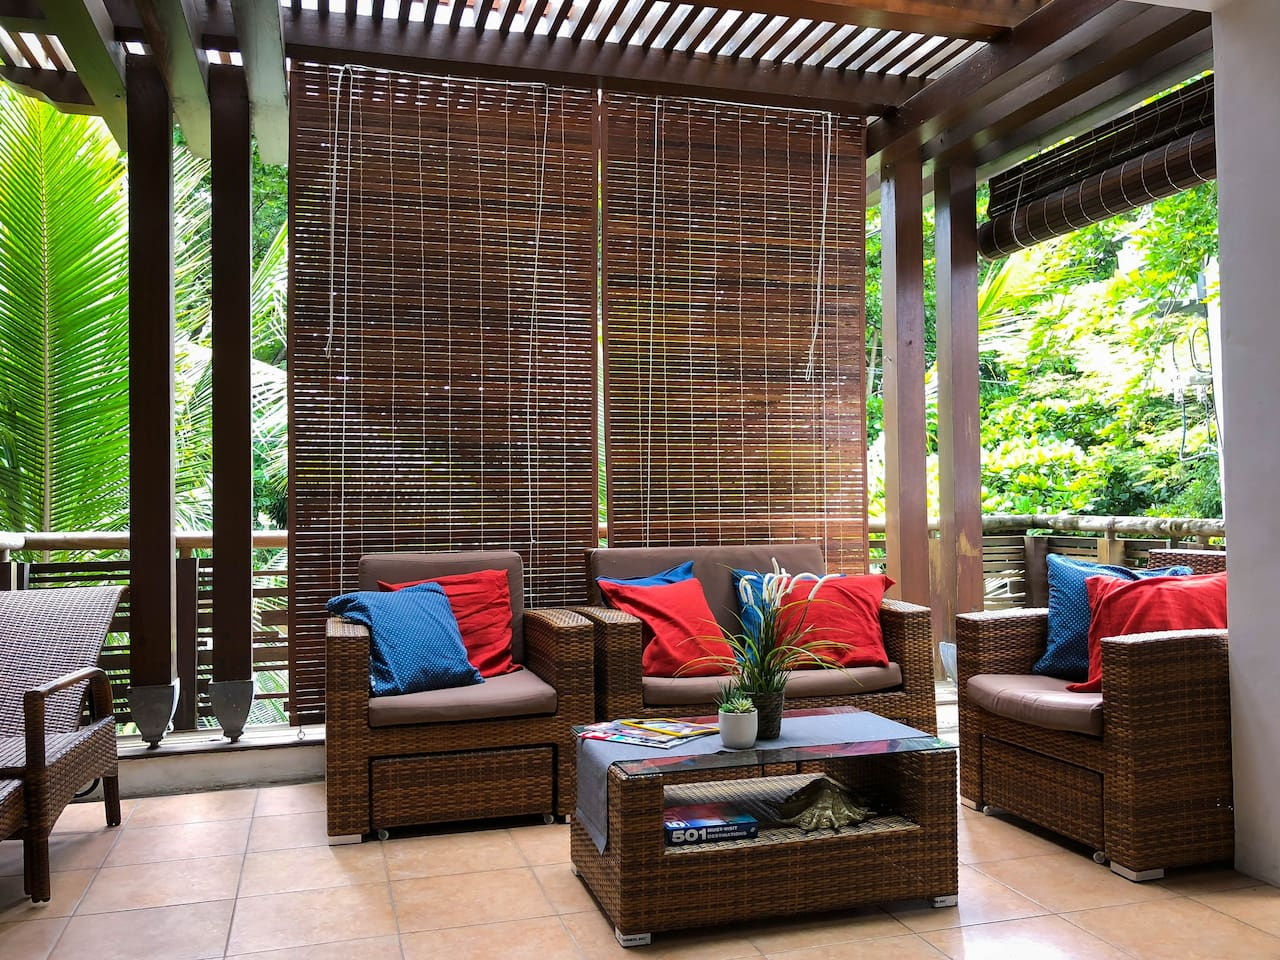 Spacious patio to enjoy and relax.